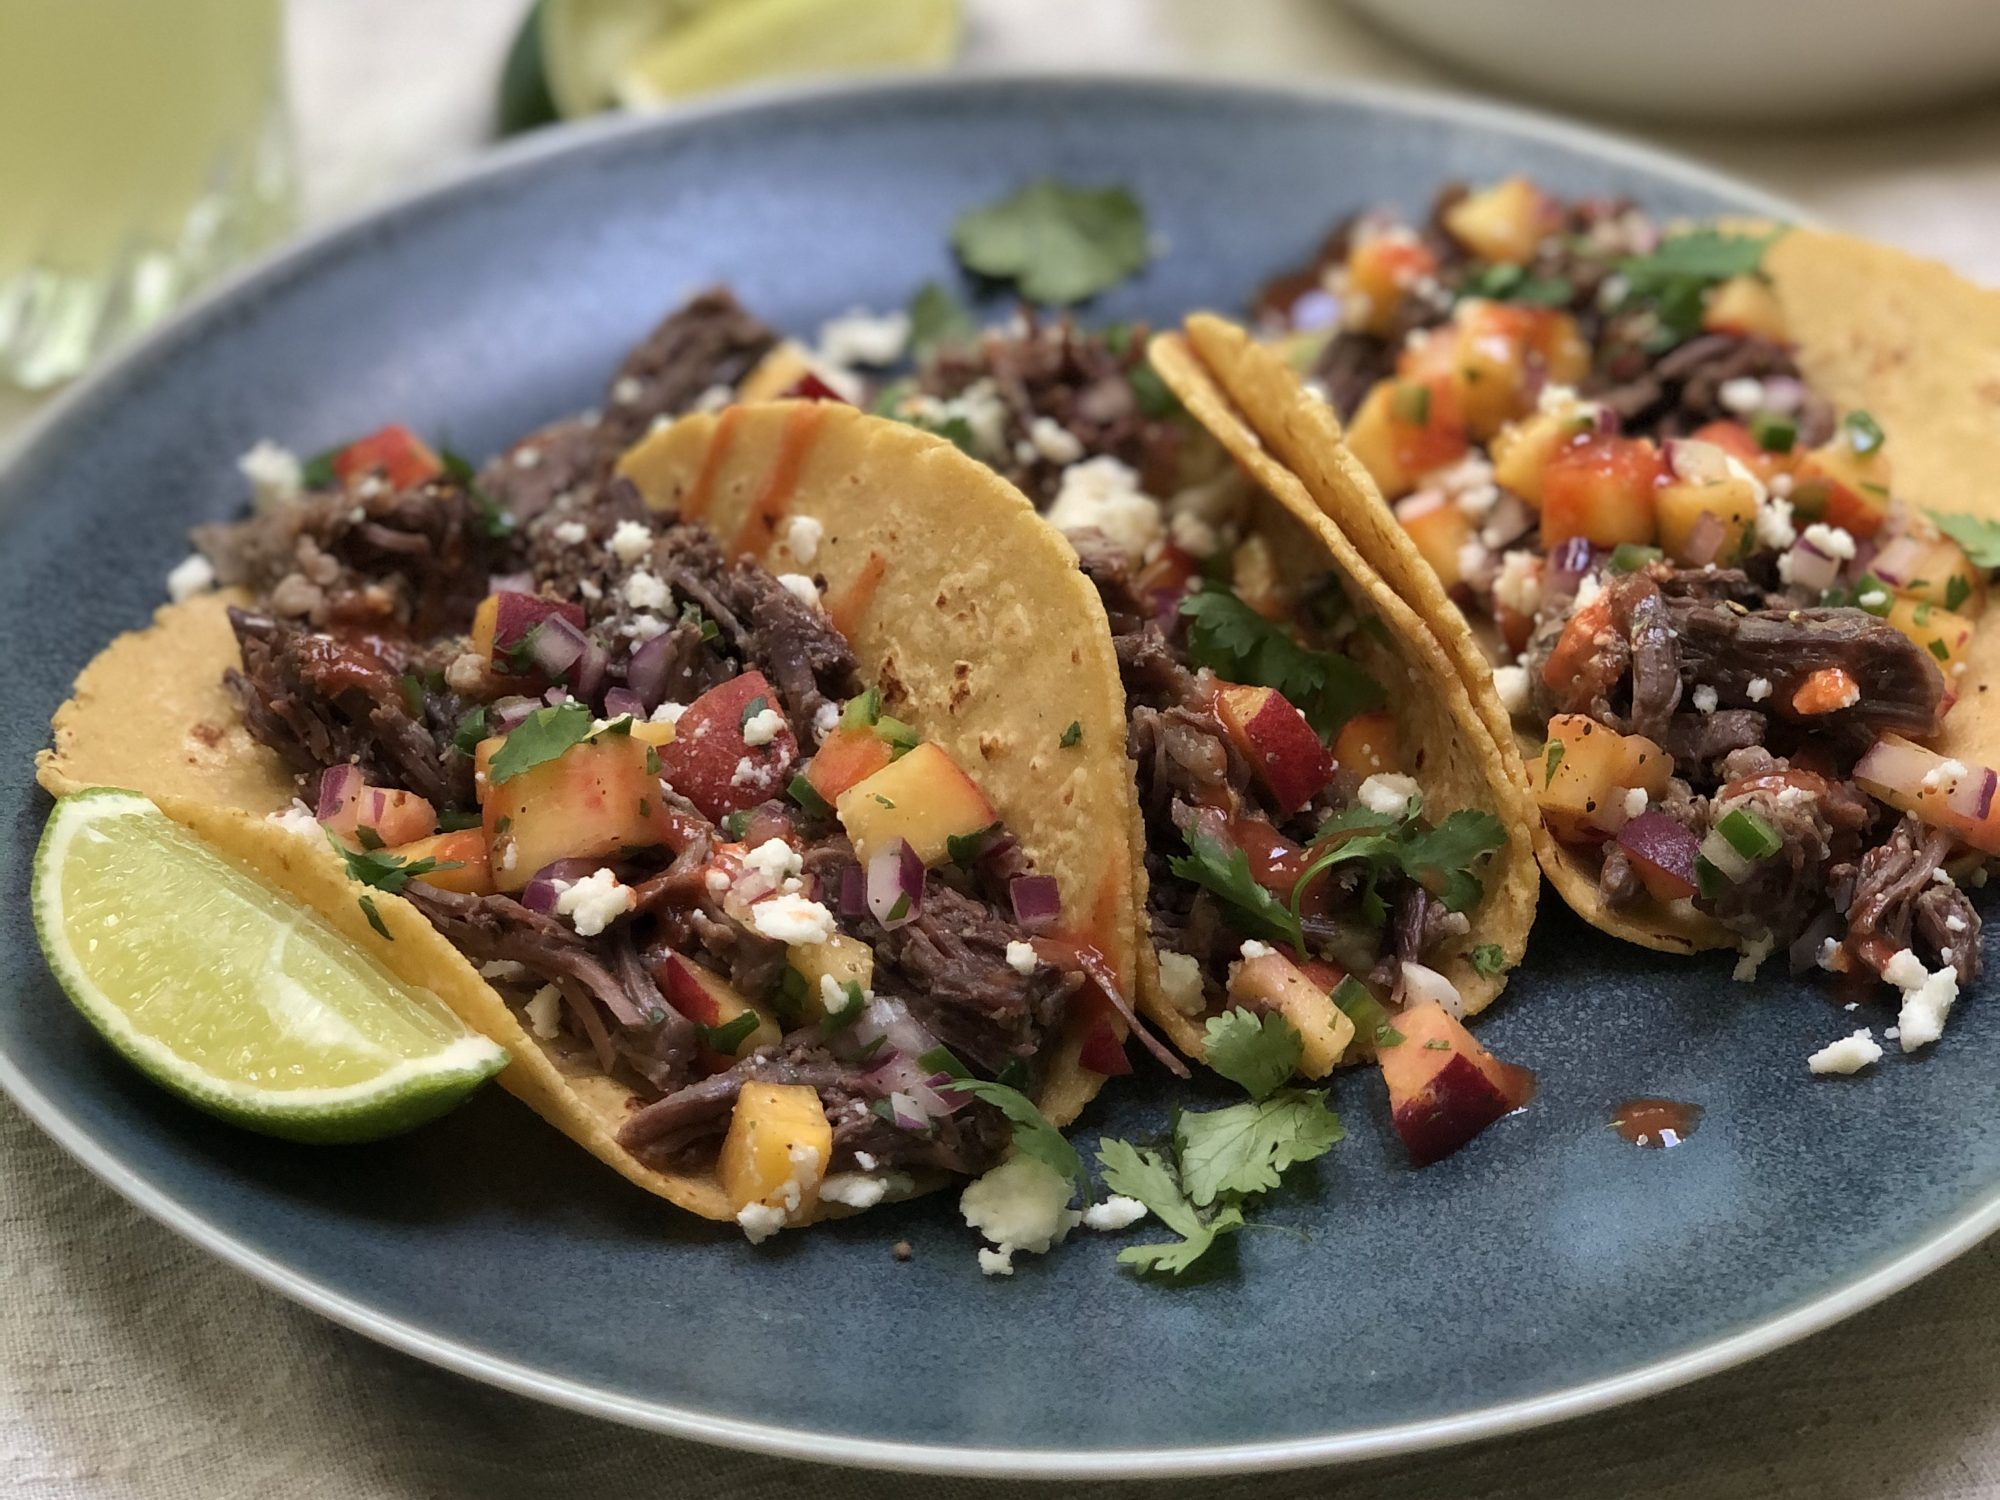 mr - Instant Pot Short Rib Tacos with Peach Salsa Image